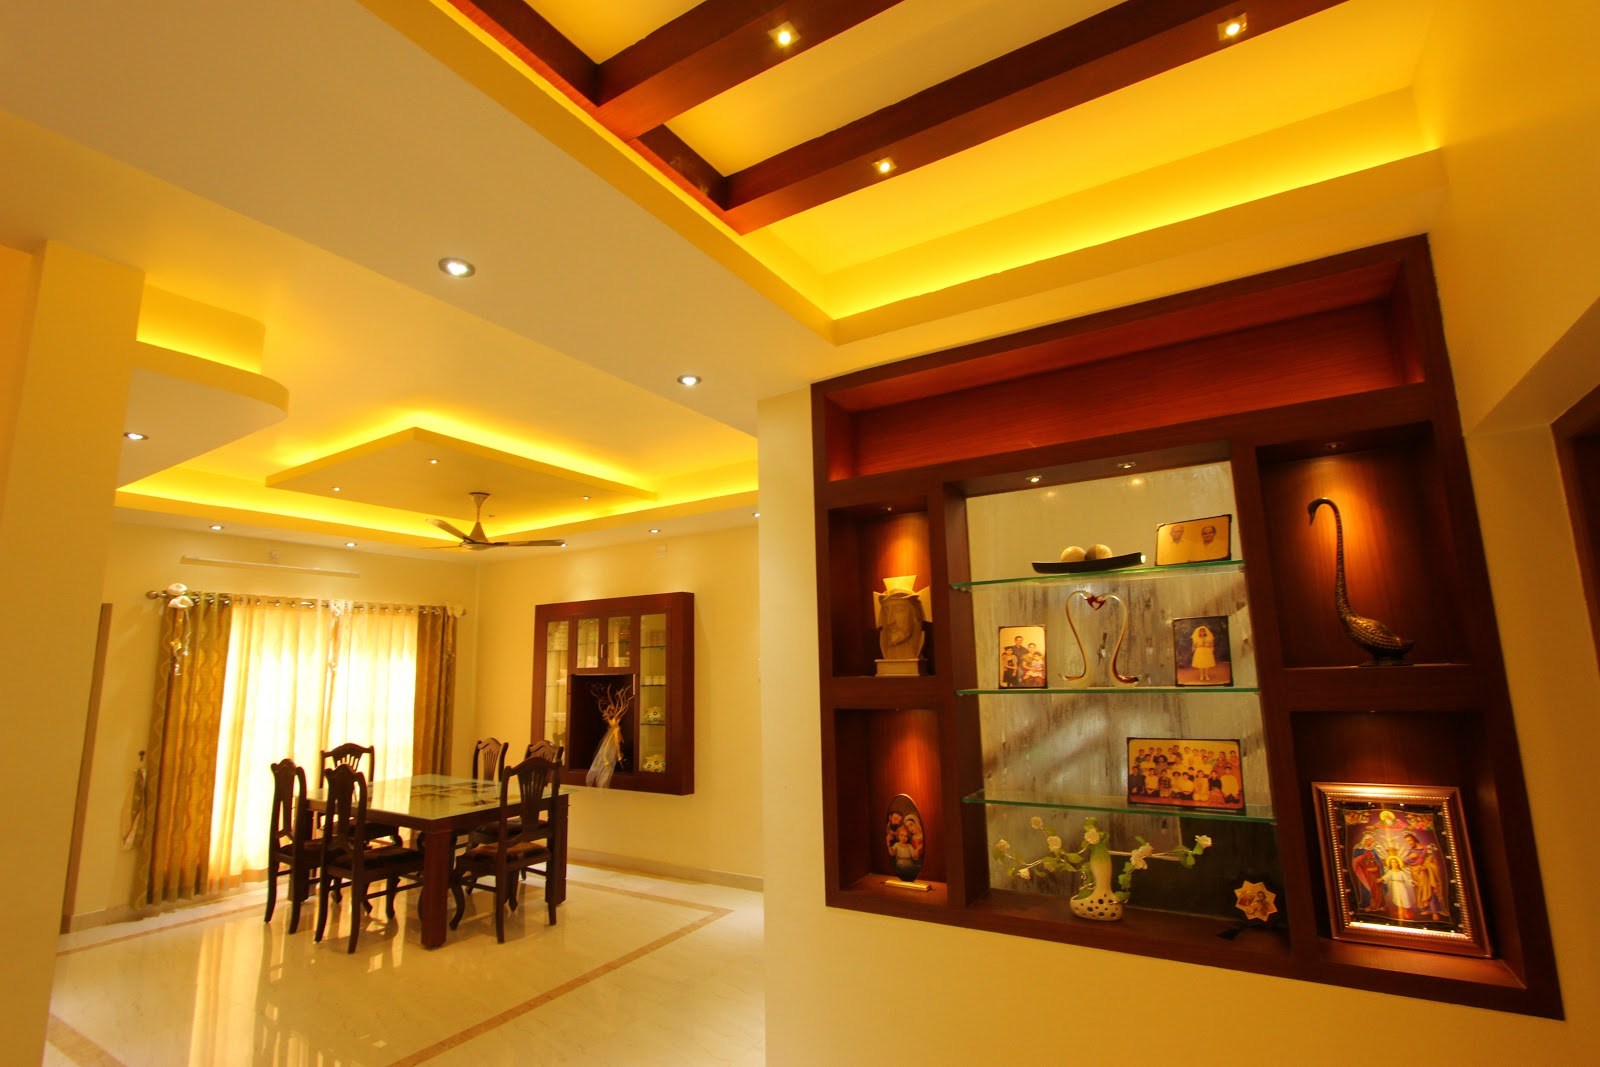 Shilpakala interiors award winning home interior design for Internal design